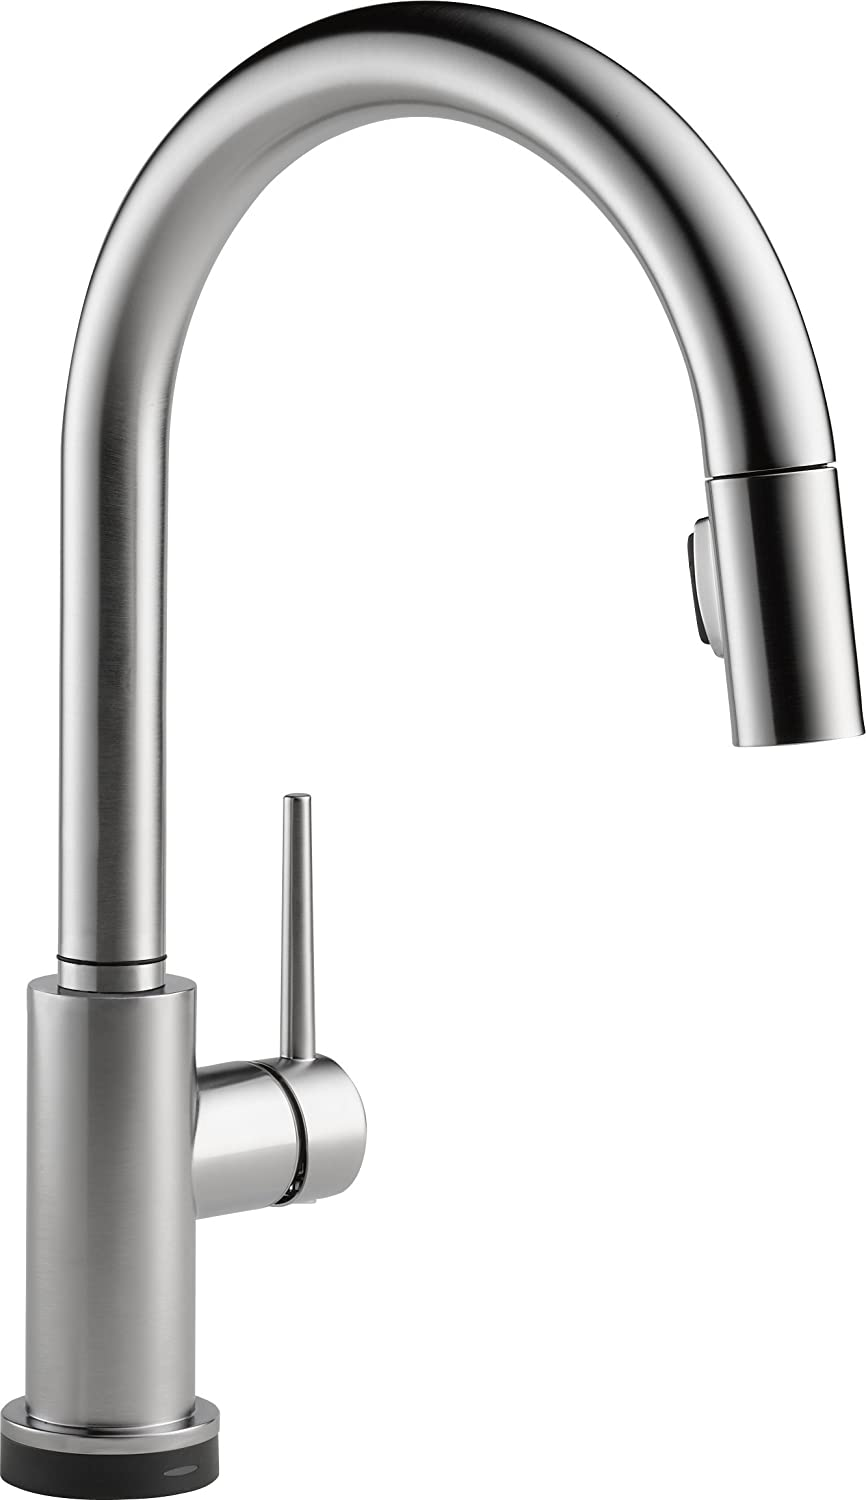 Delta Faucet 9159T-AR-DST Trinsic Single Handle Pull-Down Kitchen Faucet Featuring Touch2O Technology, Arctic Stainless